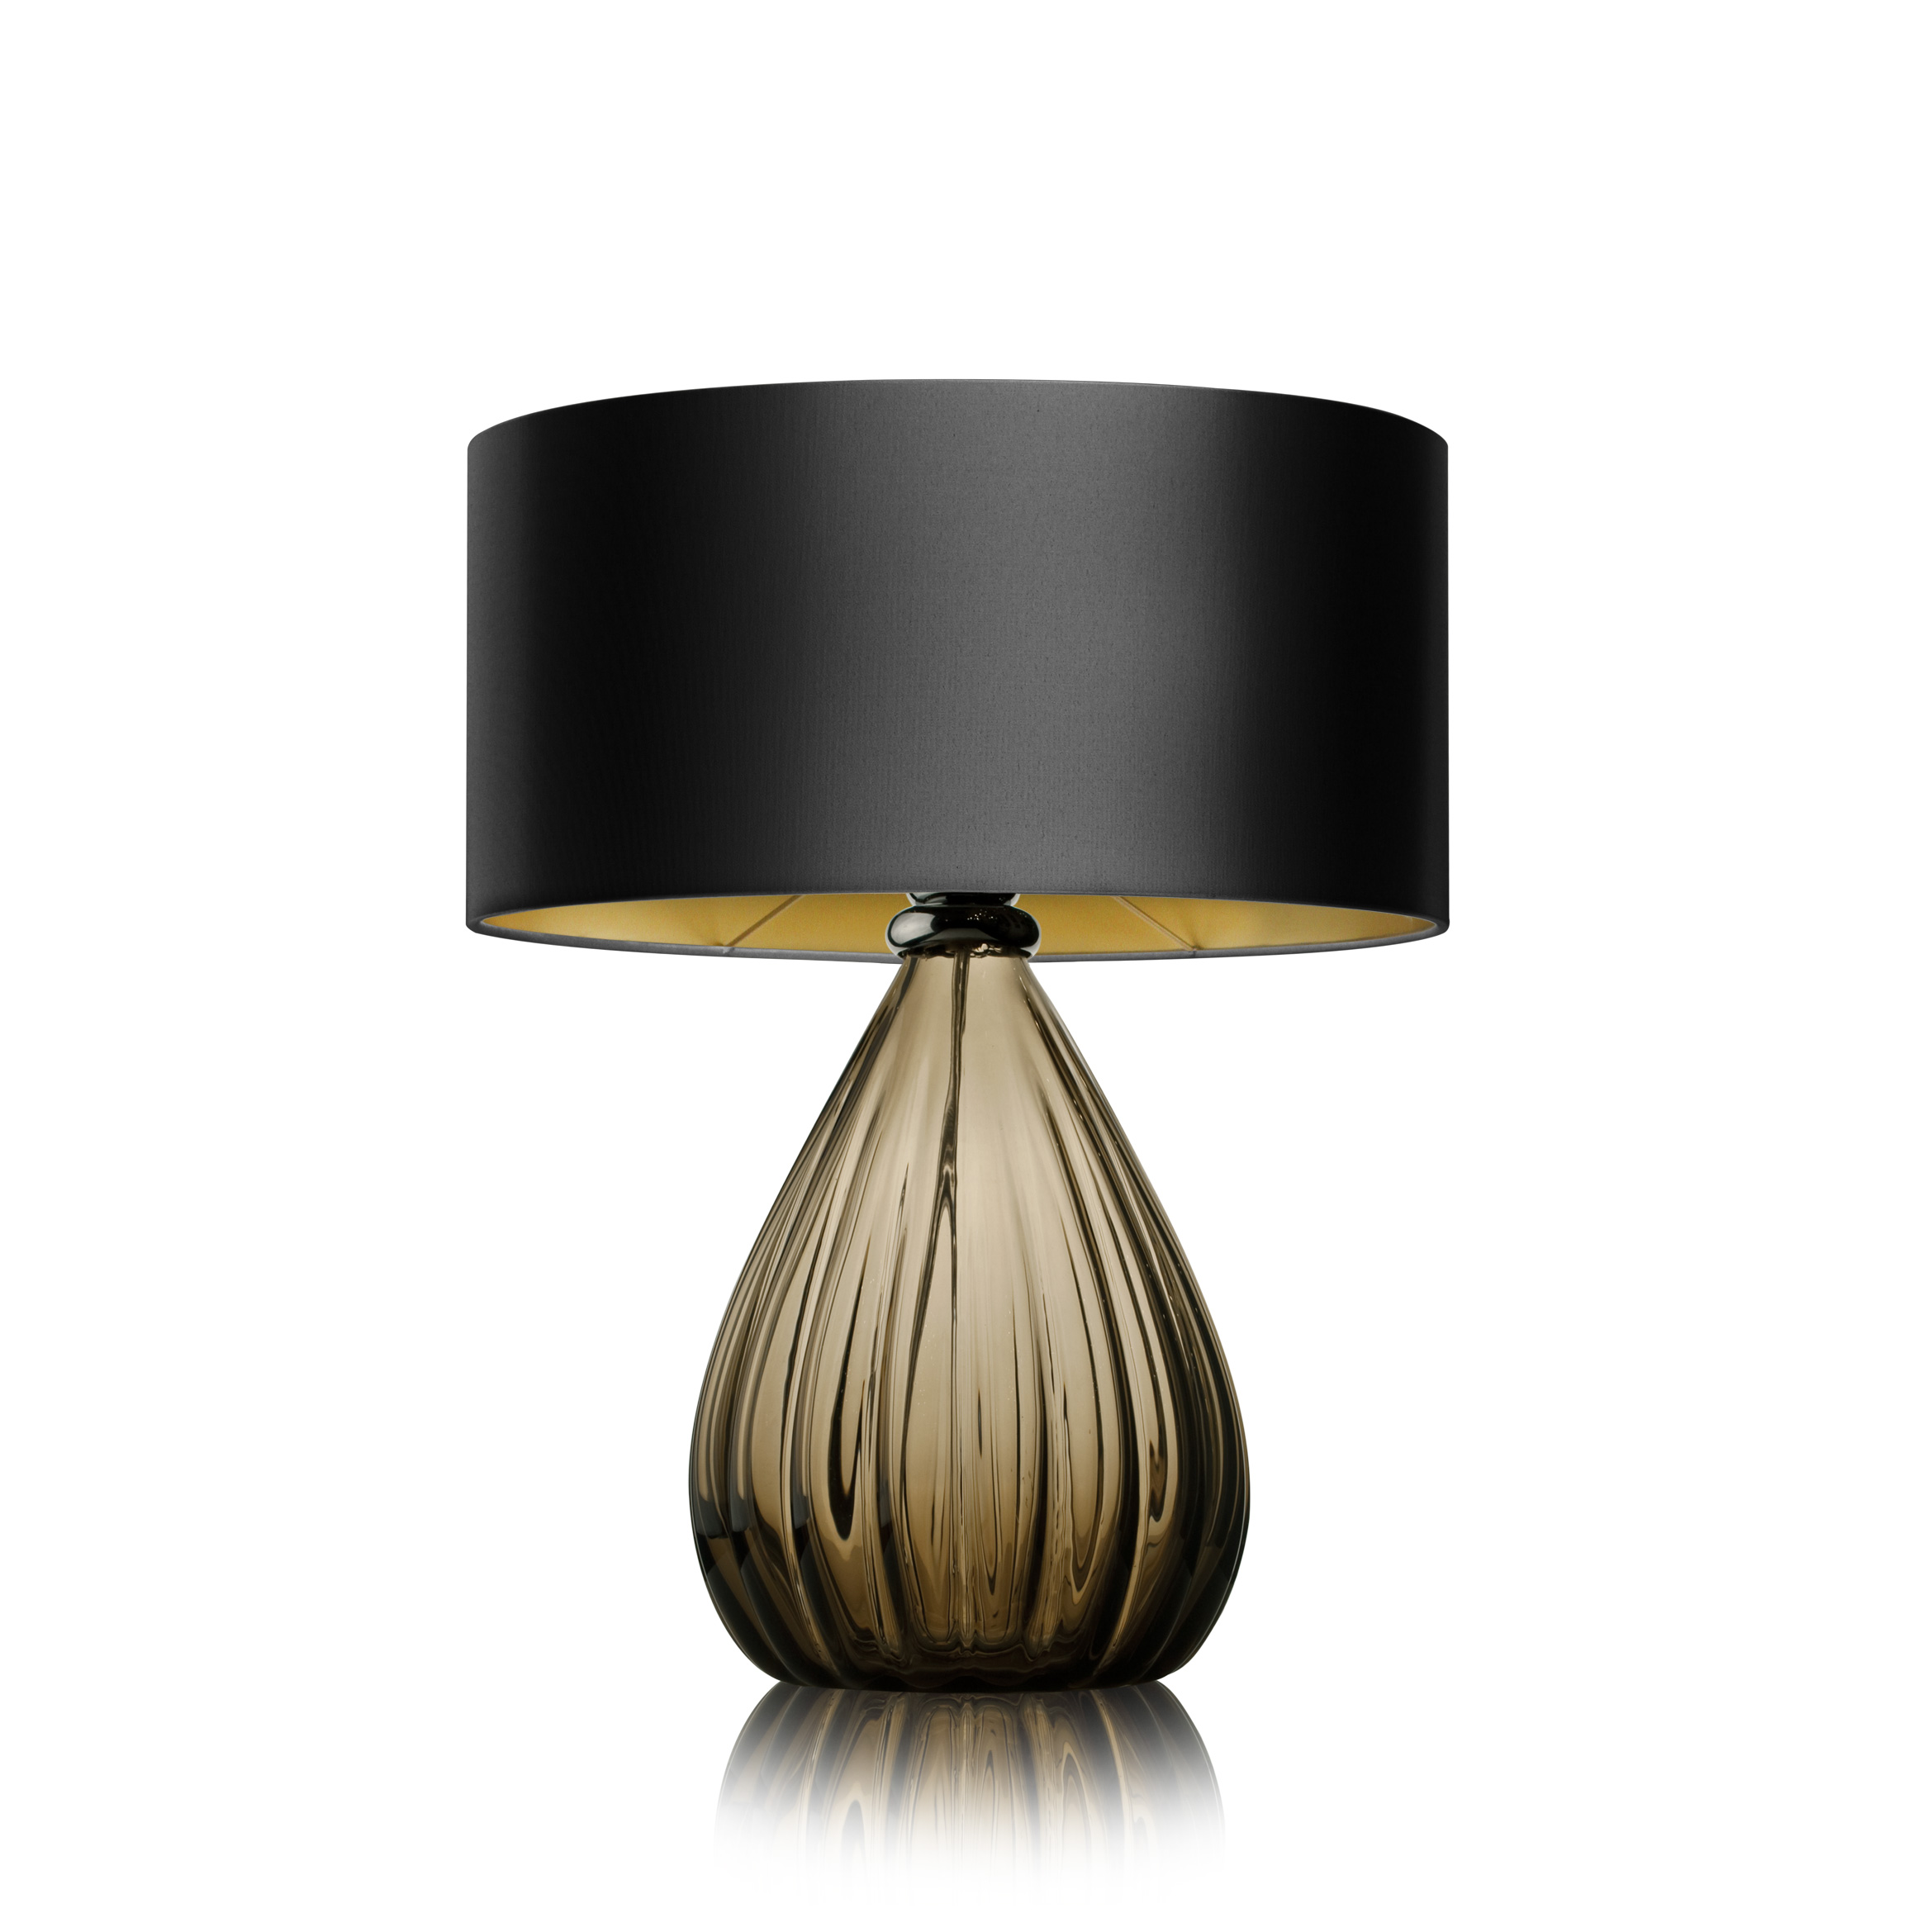 Gemma villaverde london villaverde london gemma murano table lamp fume square aloadofball Image collections